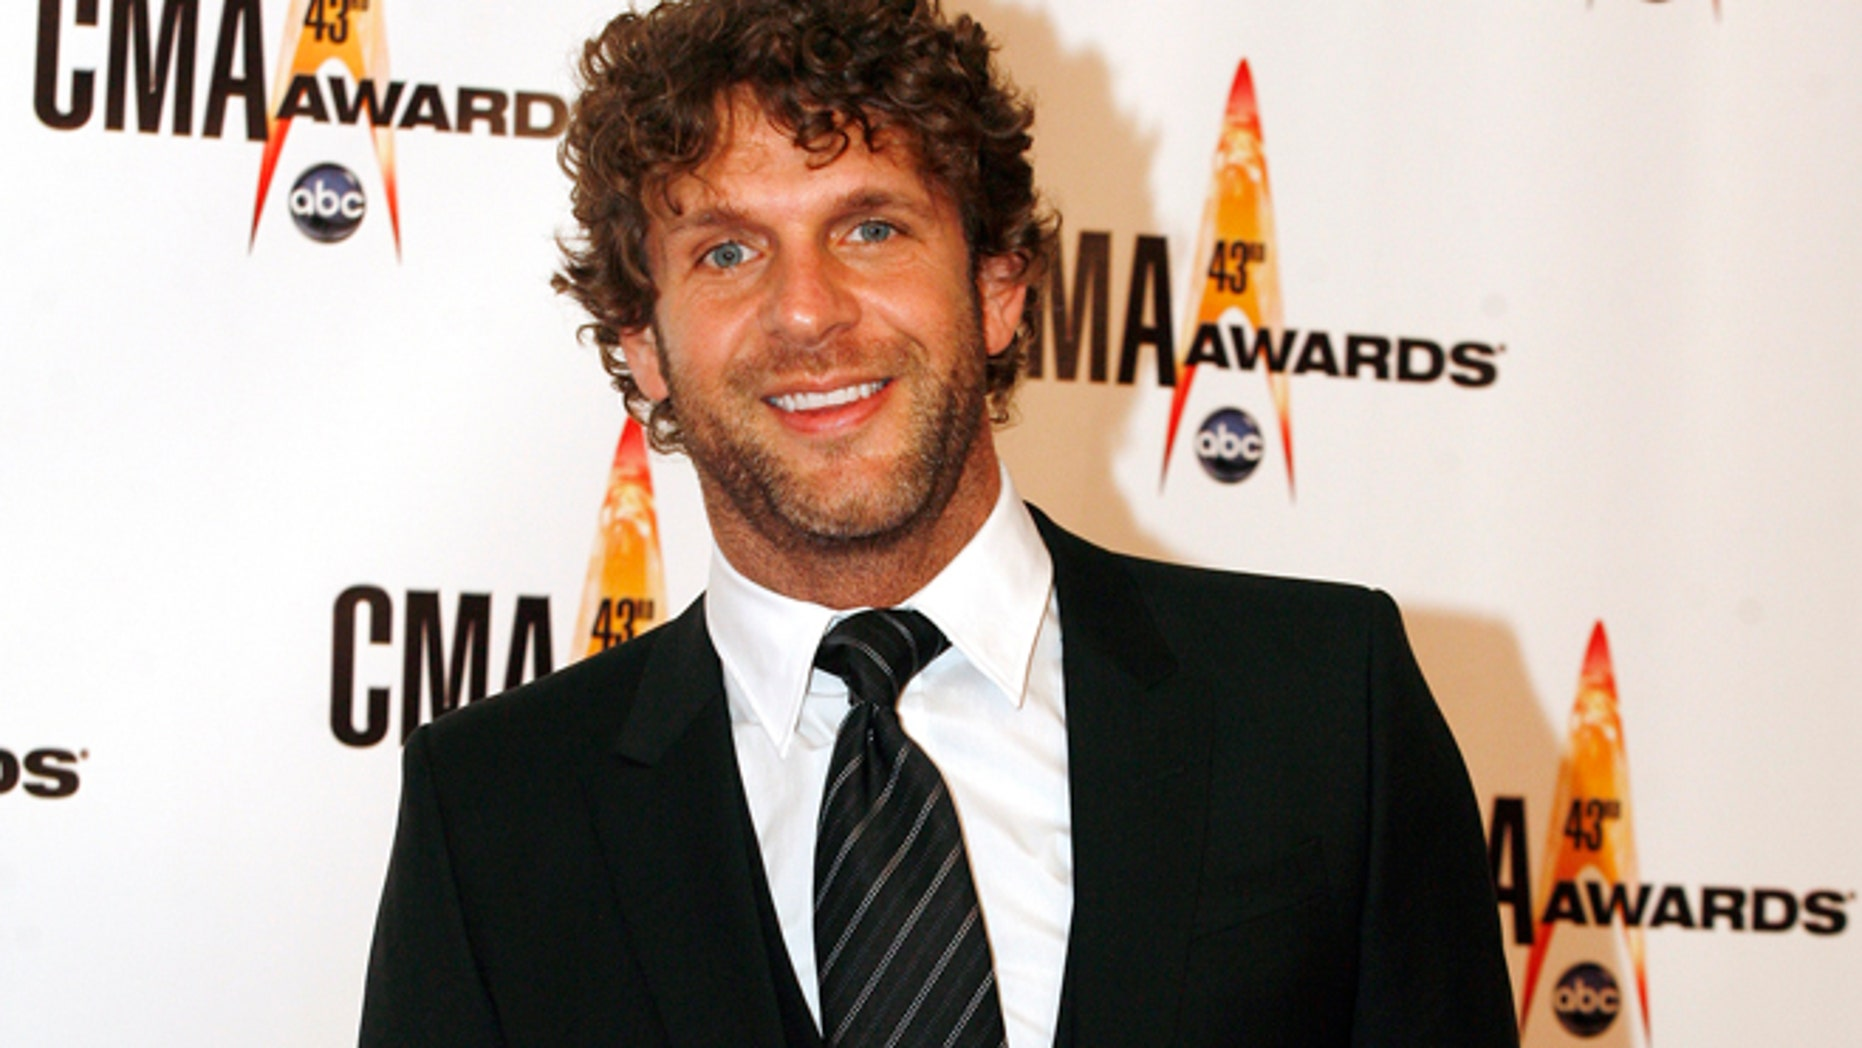 Nominee Billy Currington arrives at the 43rd annual Country Music Association Awards in Nashville Nov. 11, 2009.